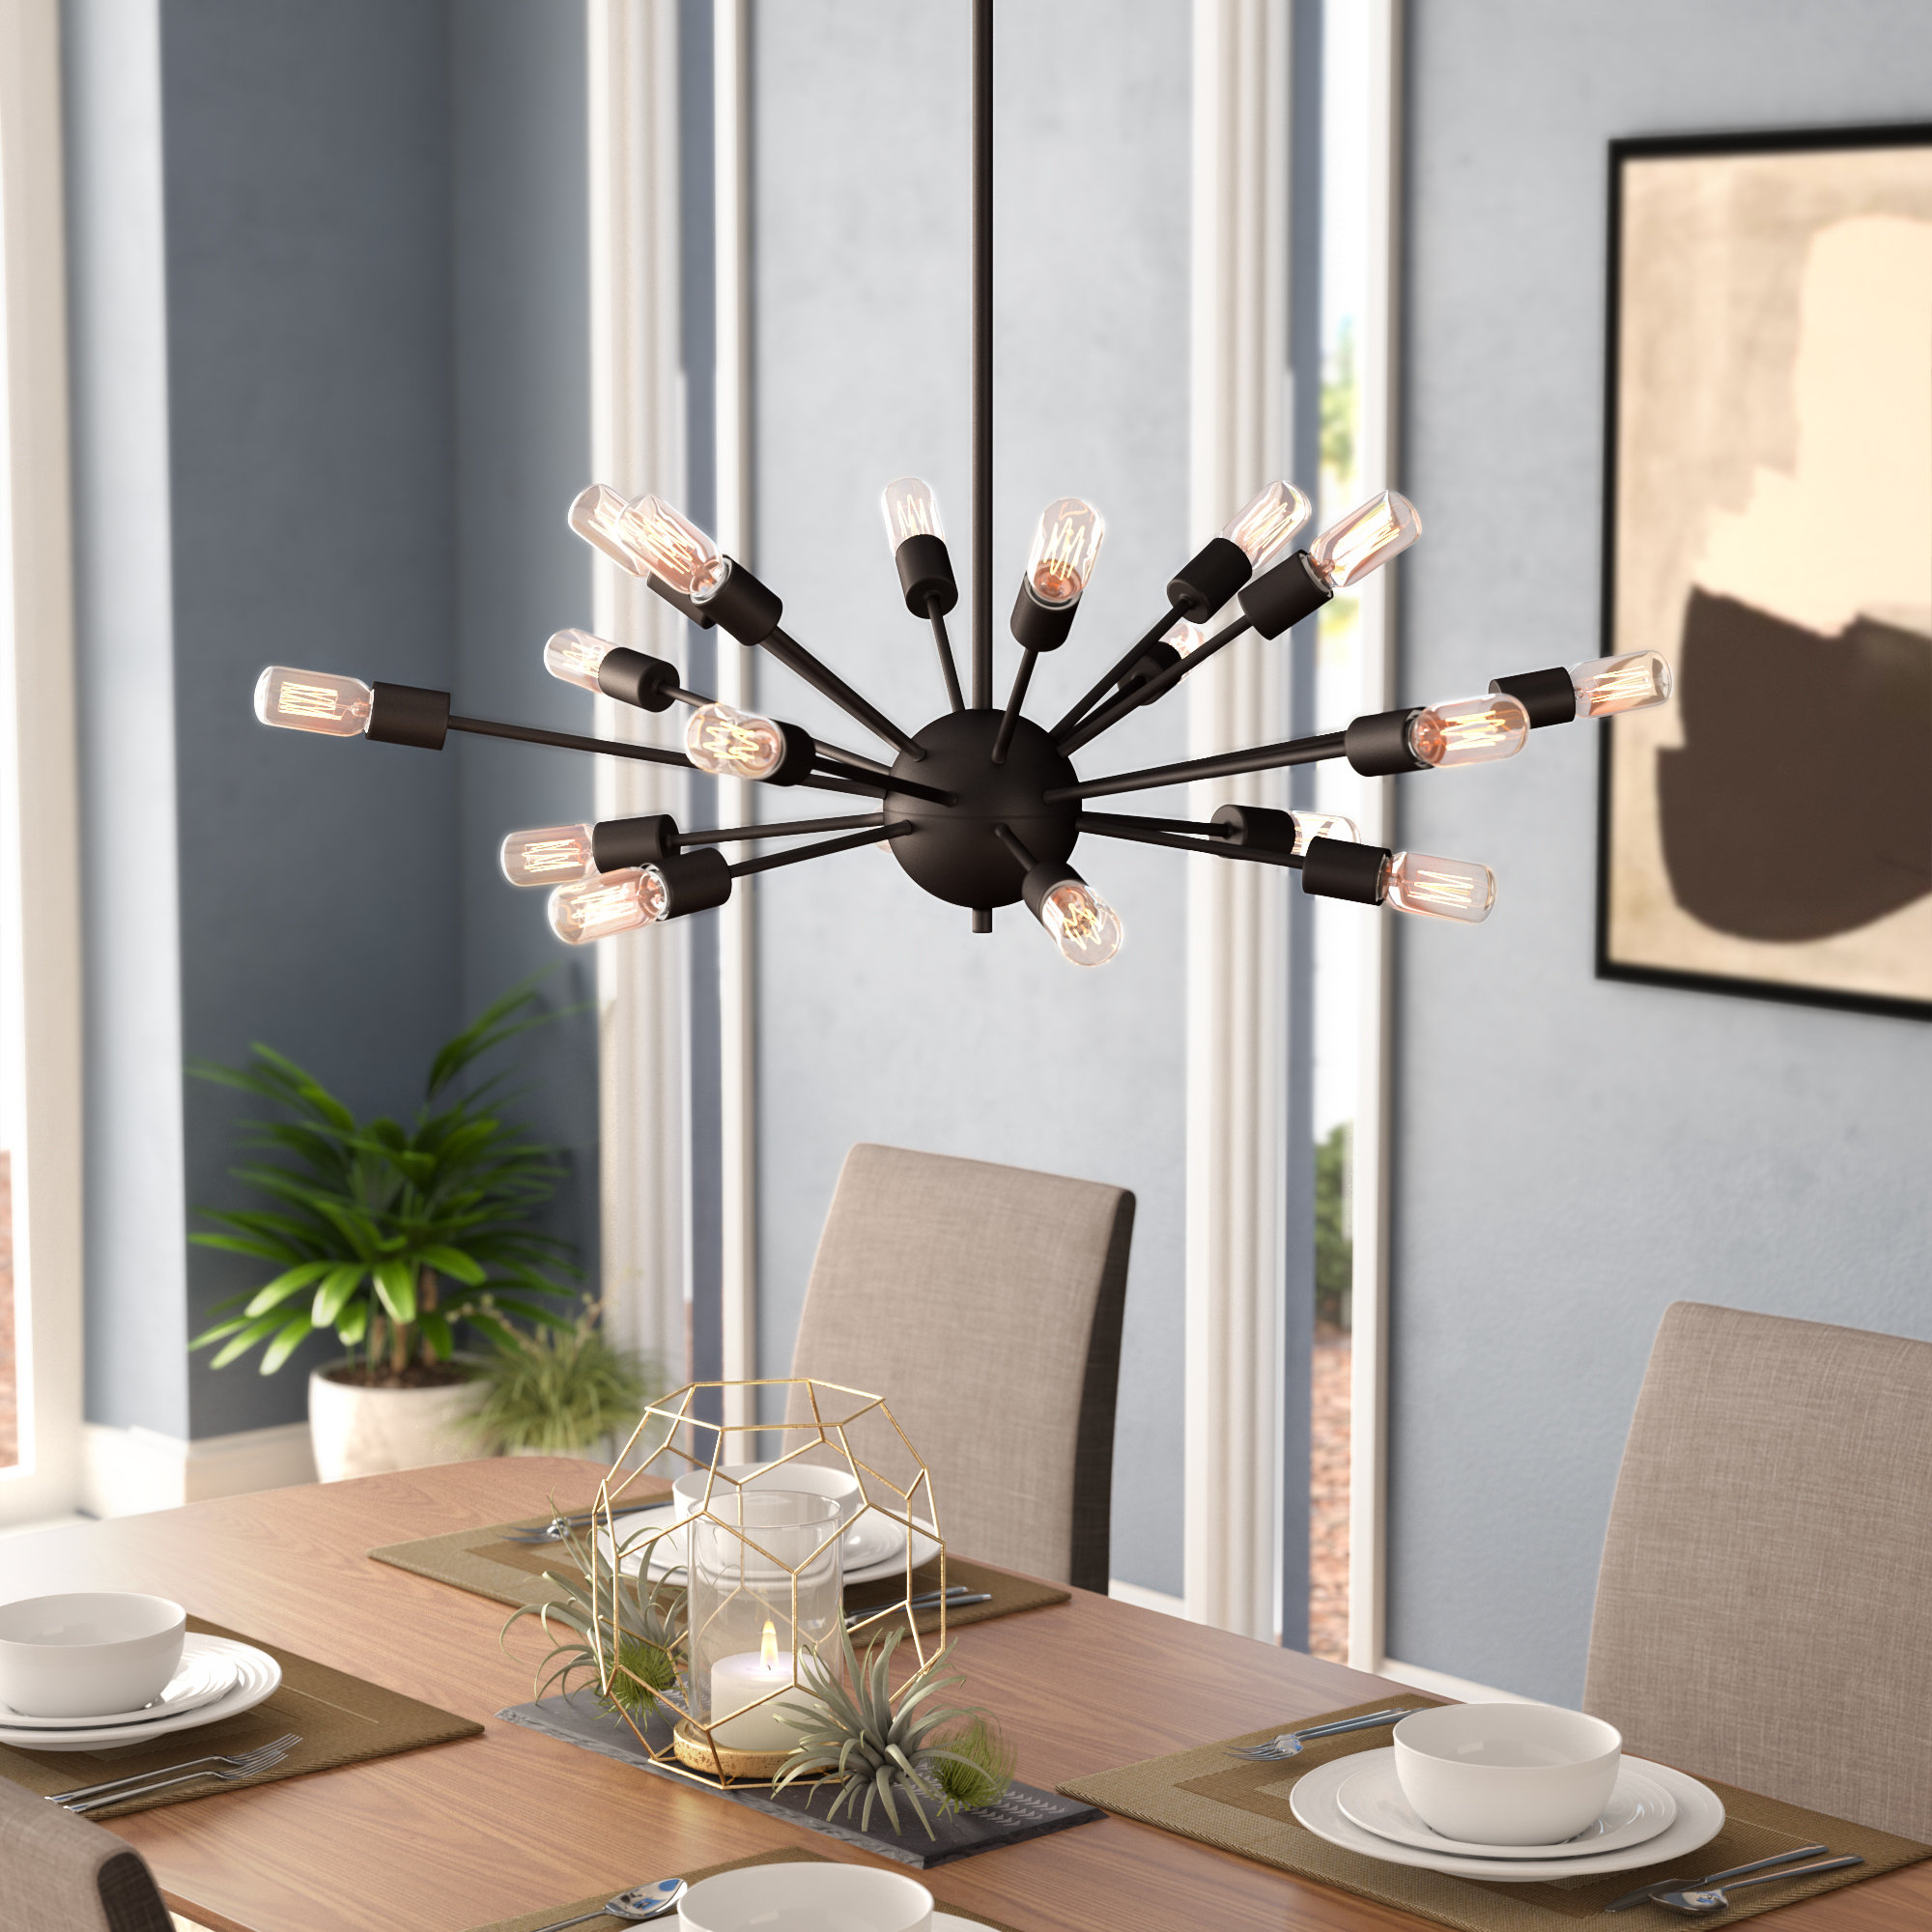 Weiss 18 Light Chandelier With Newest Defreitas 18 Light Sputnik Chandeliers (View 20 of 20)